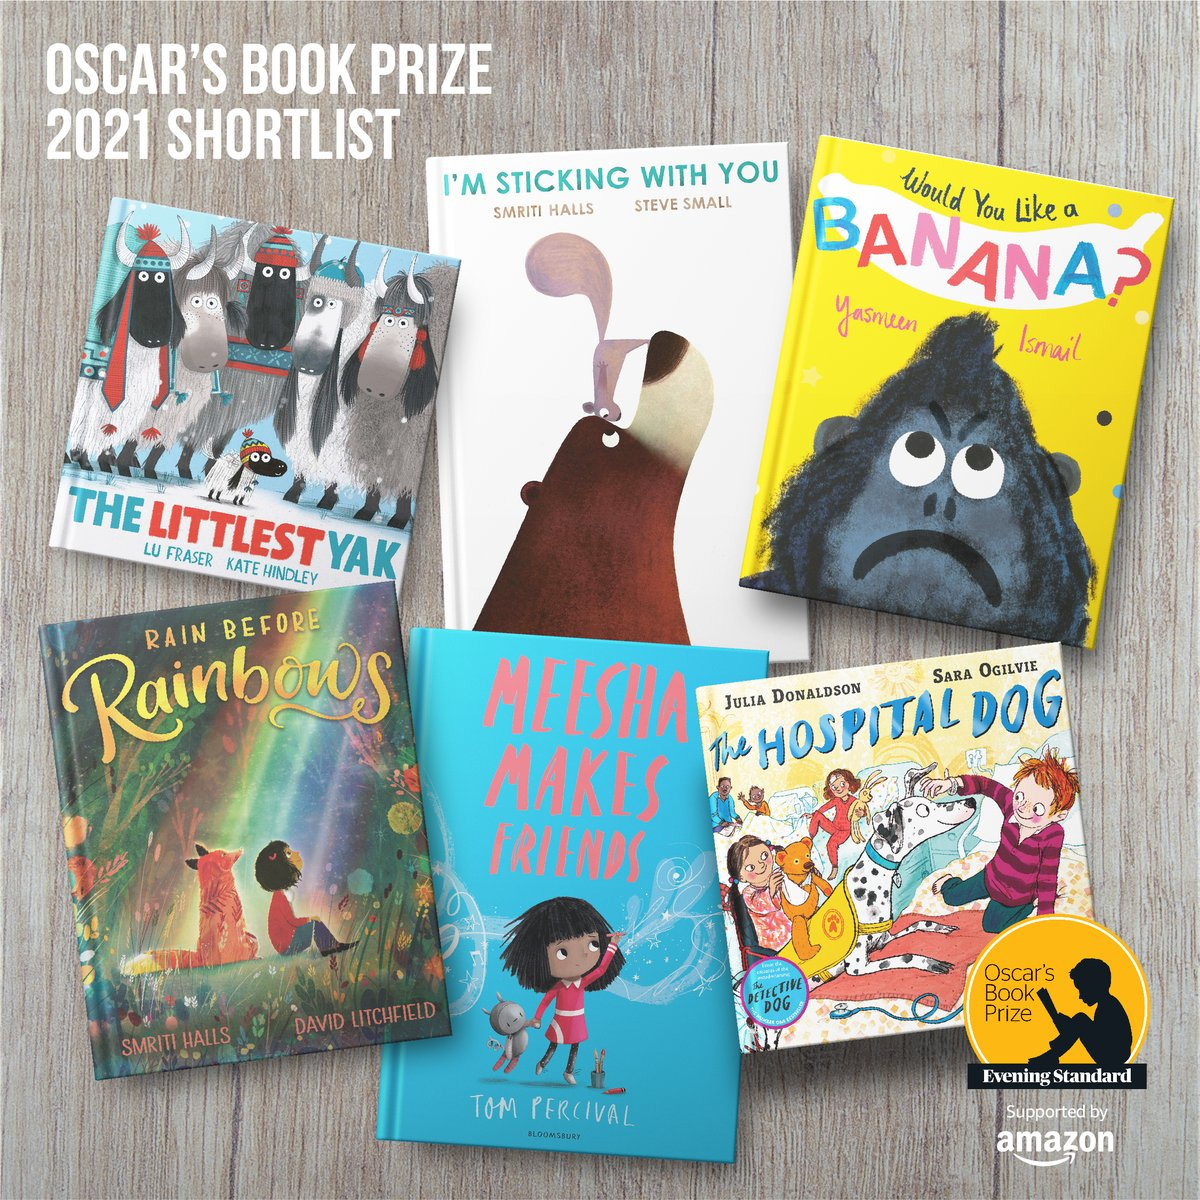 We are delighted to help promote a wonderful award that champions the creativity of UK authors and illustrators, and their dedication to magical storytelling for children at such a vital age in their development.  Good luck to everyone shortlisted for this year's prize!  #OBP21